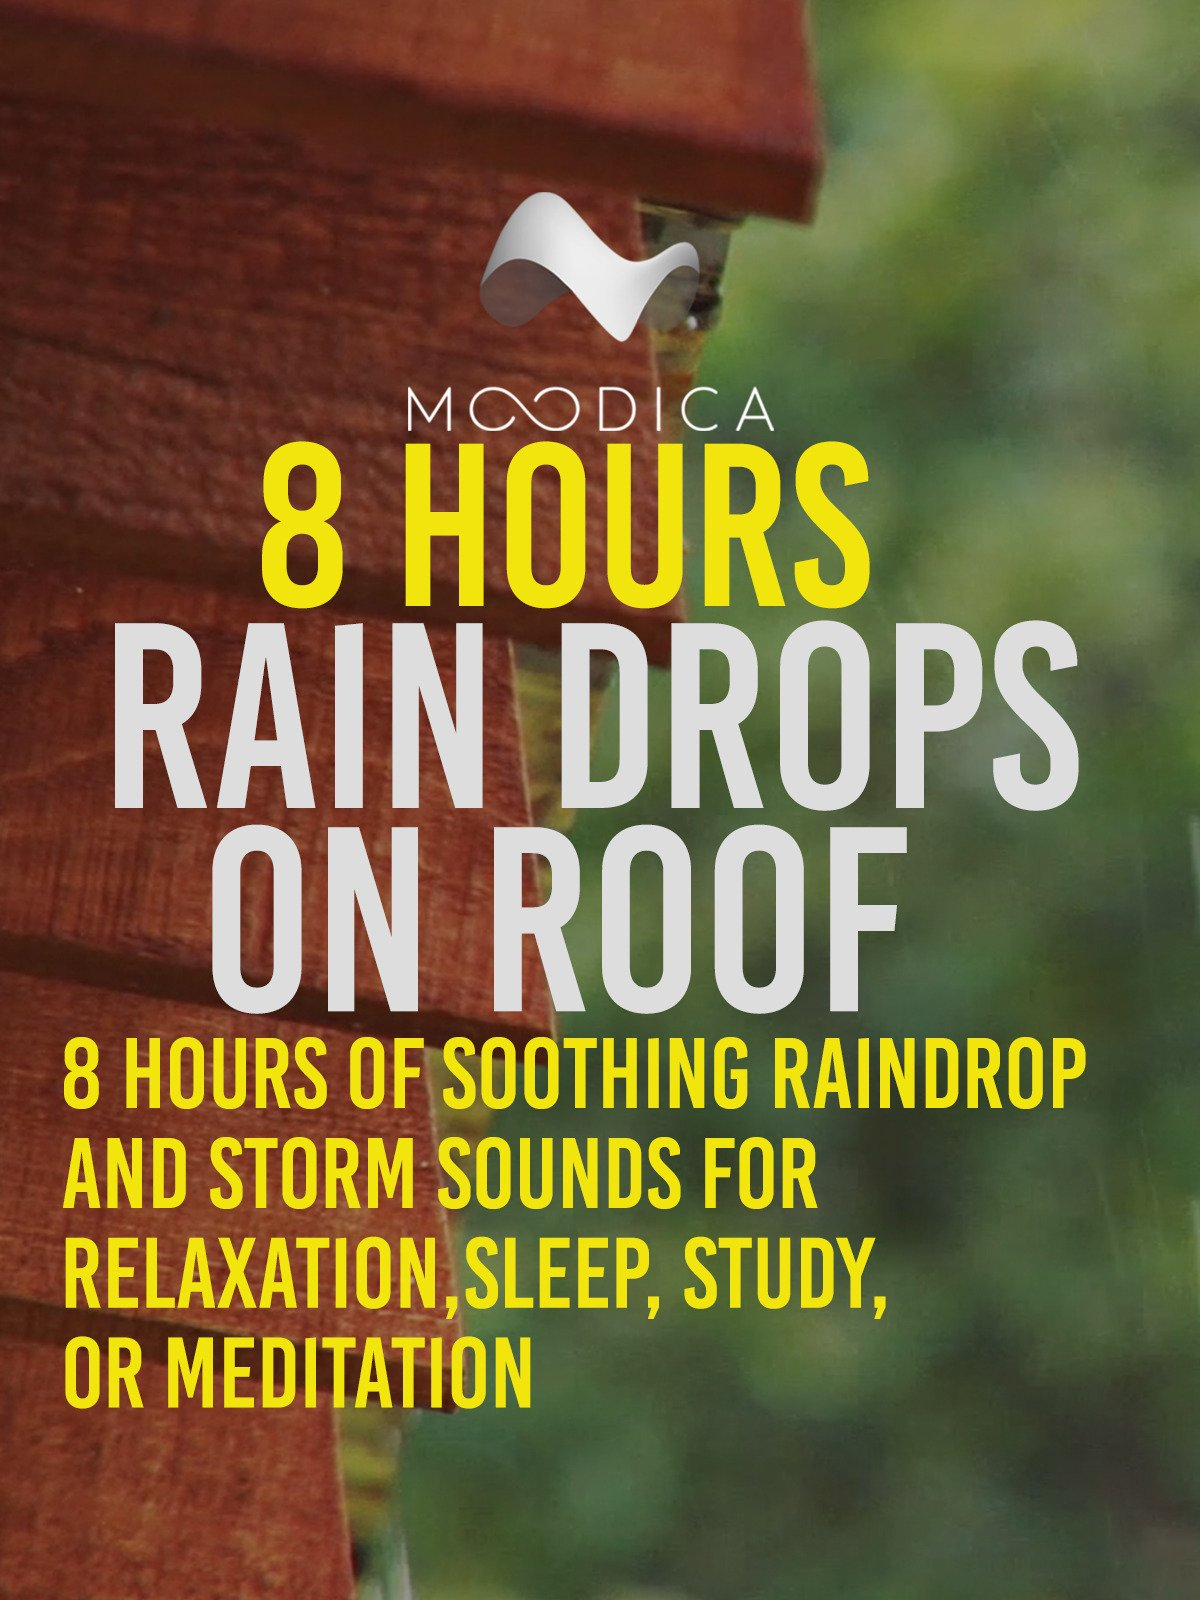 8 Hours: Rain Drops On Roof: 8 Hours of Soothing Raindrop and Storm Sounds for Relaxation, Sleep, Study or Meditation